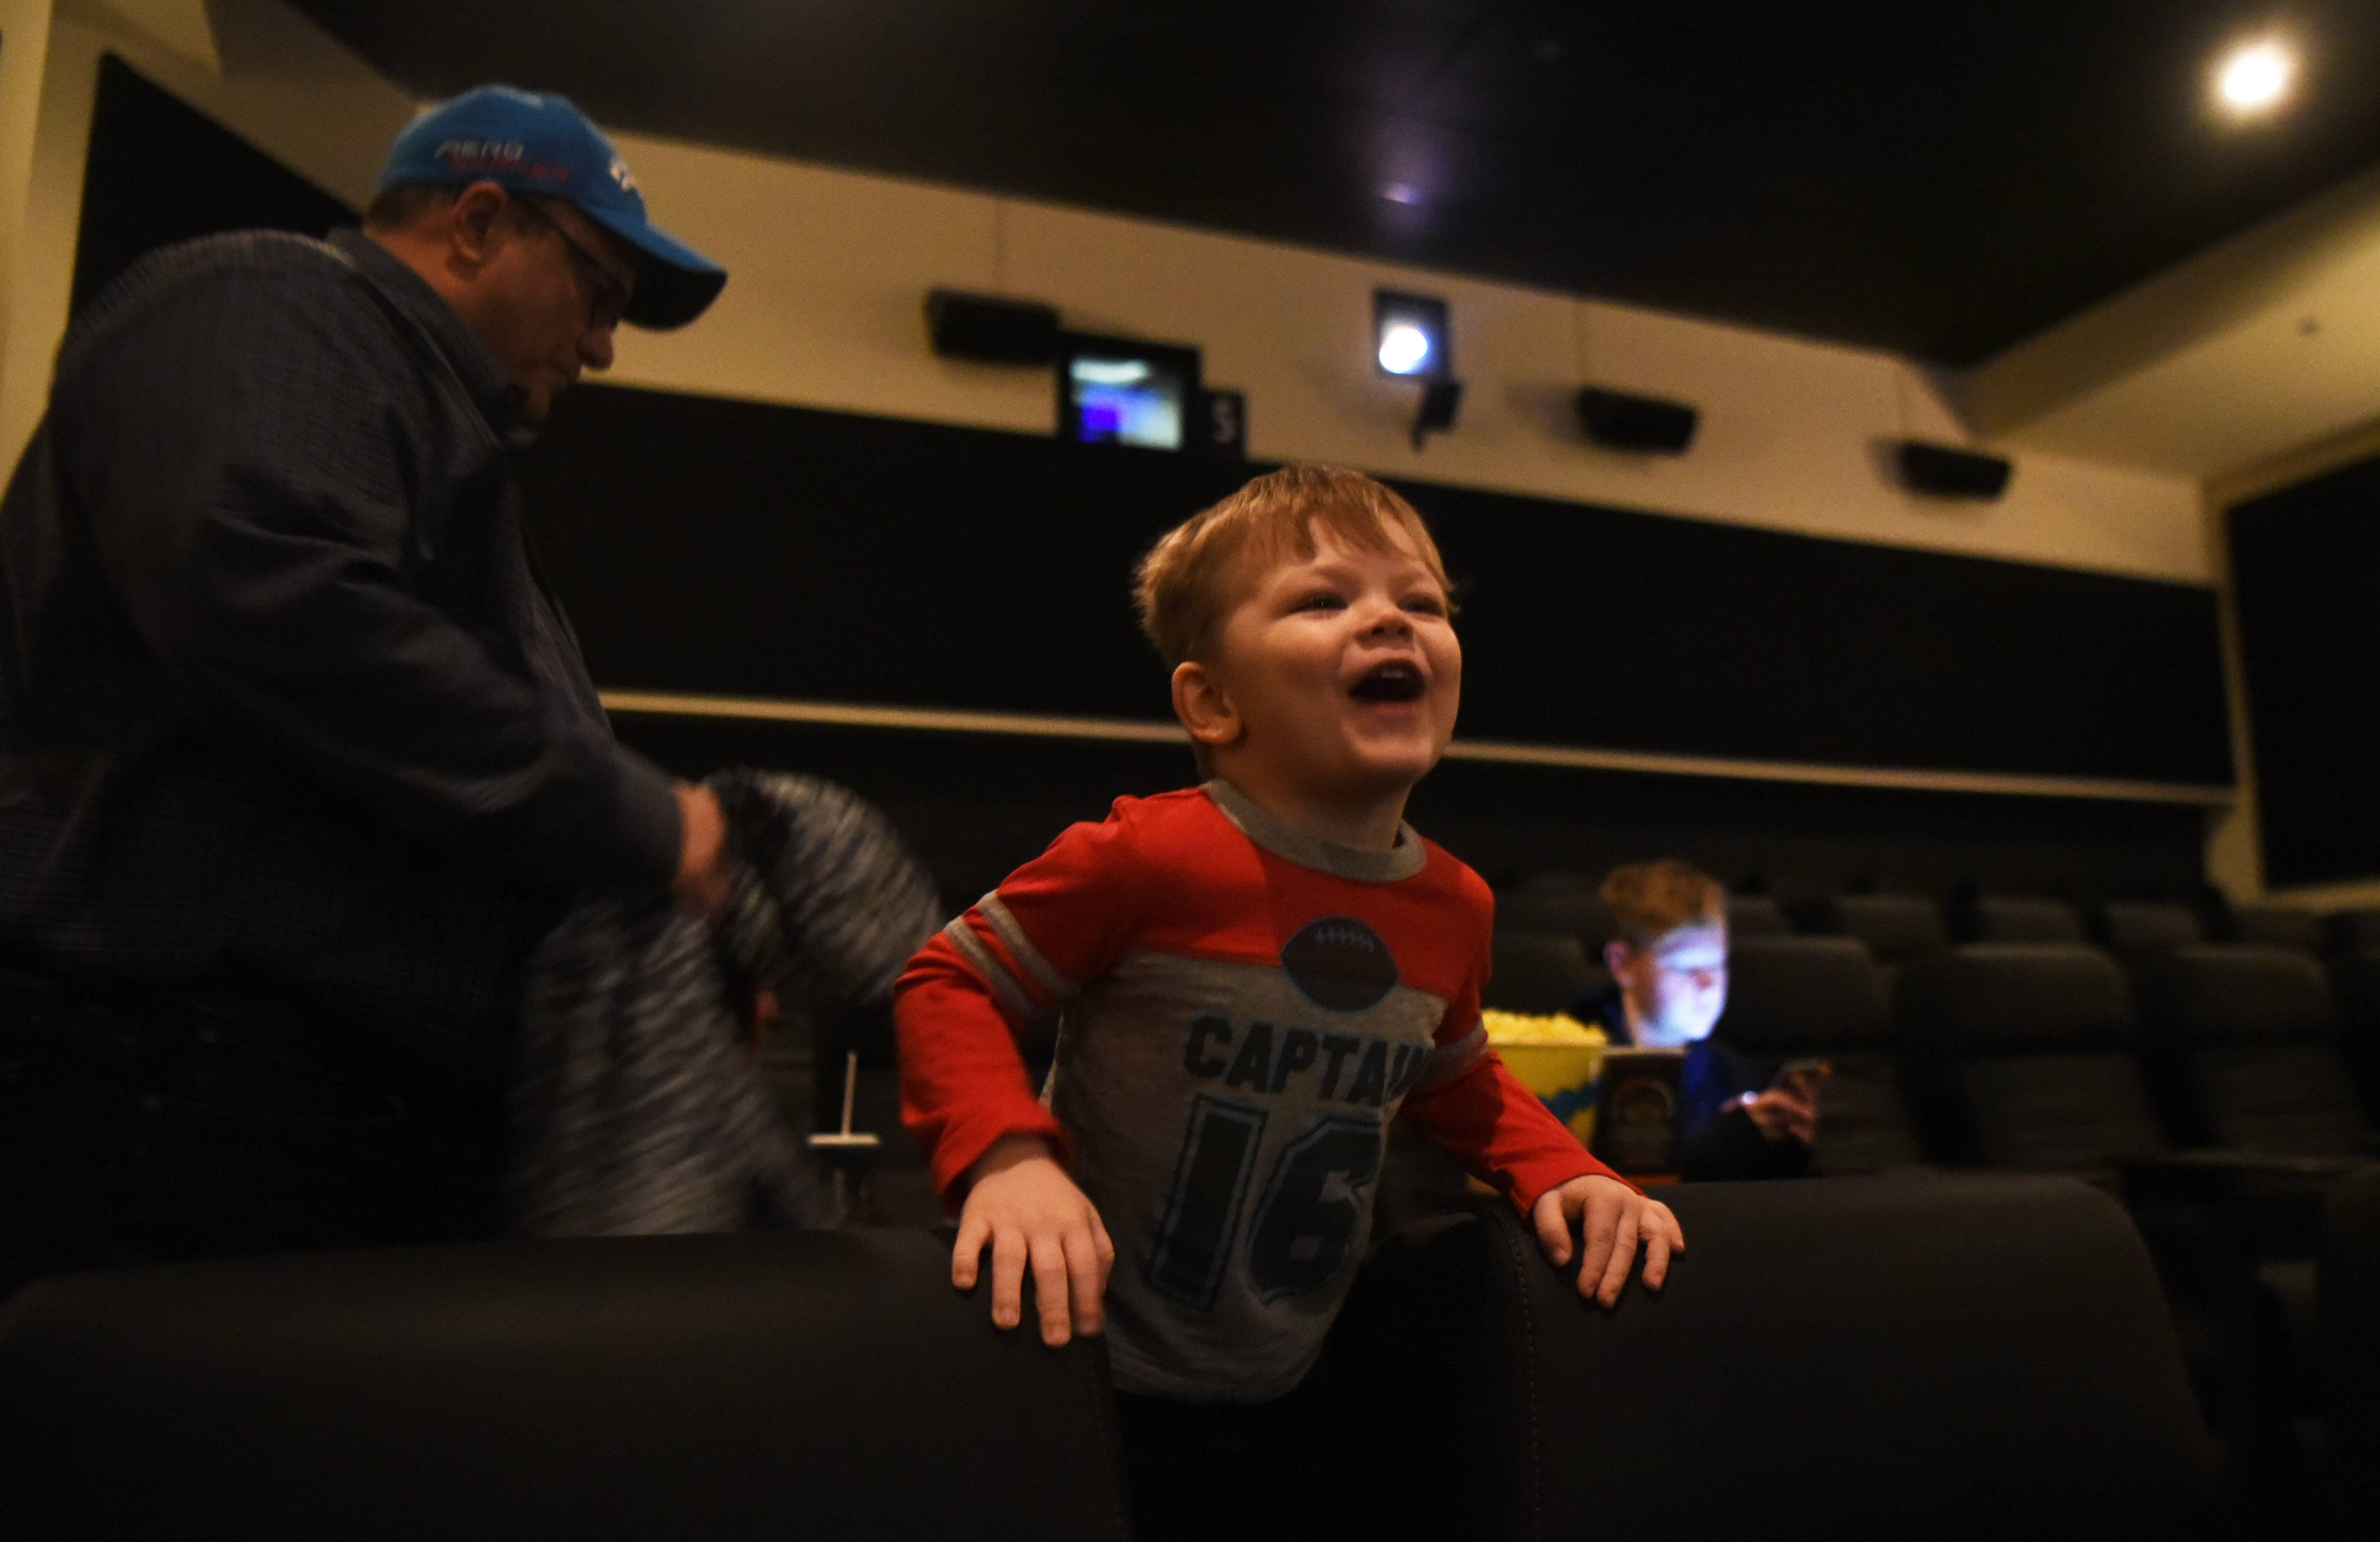 Jacob Lichner, 3, of Arlington Heights, attends a sensory-friendly movie with his dad, Kirk, and brother, A.J, at the Paragon Theater in Arlington Heights.